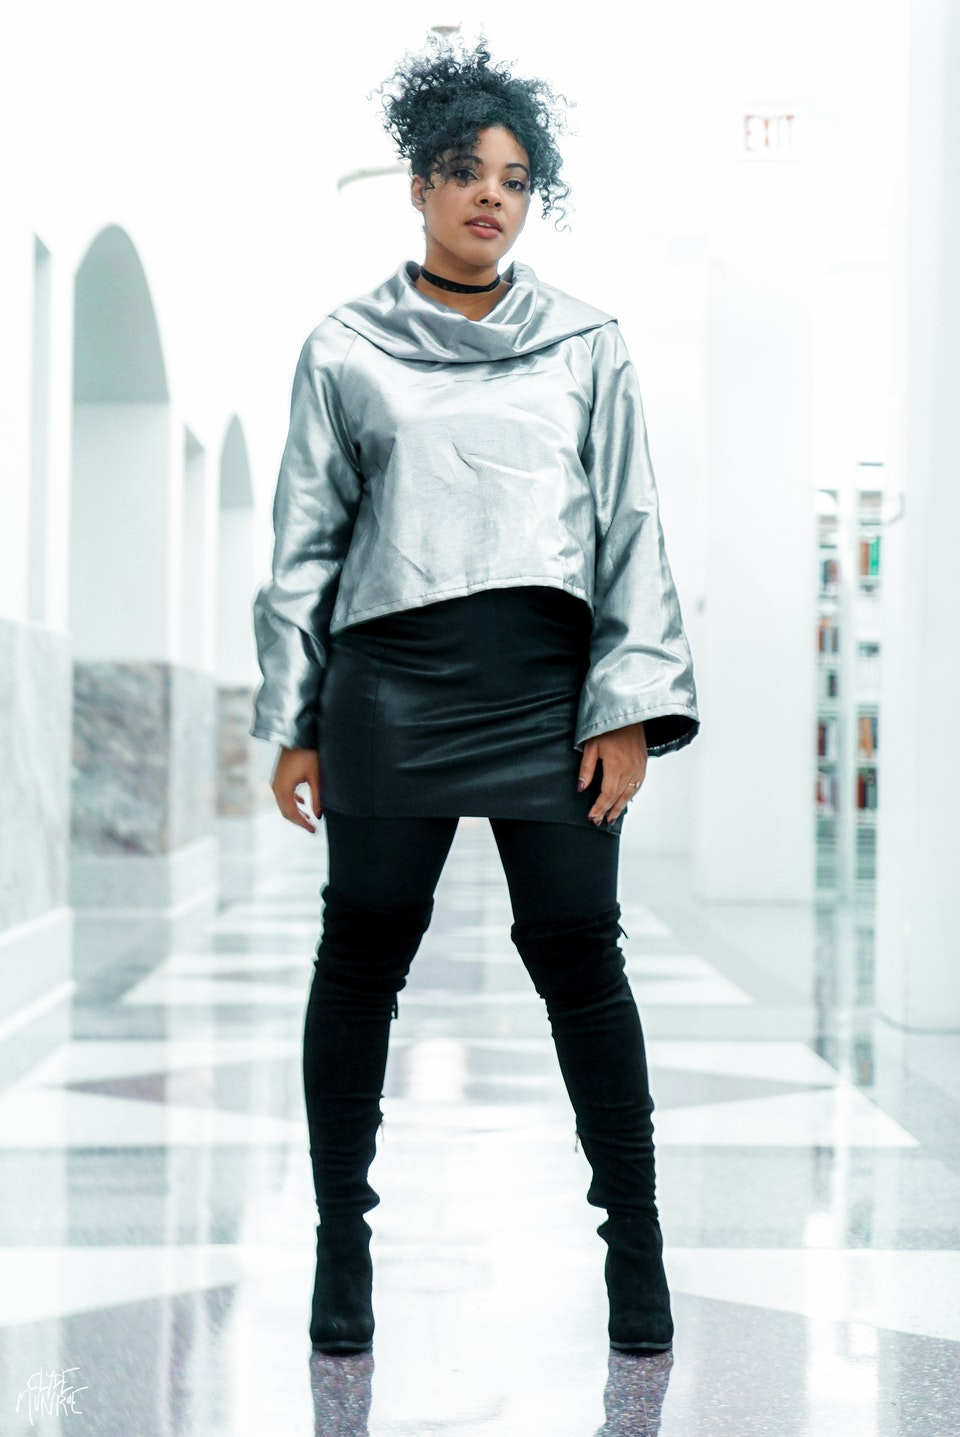 Bianca is wearing the Eugene Taylor bell crop top jacket   Photo by Clyde Munroe